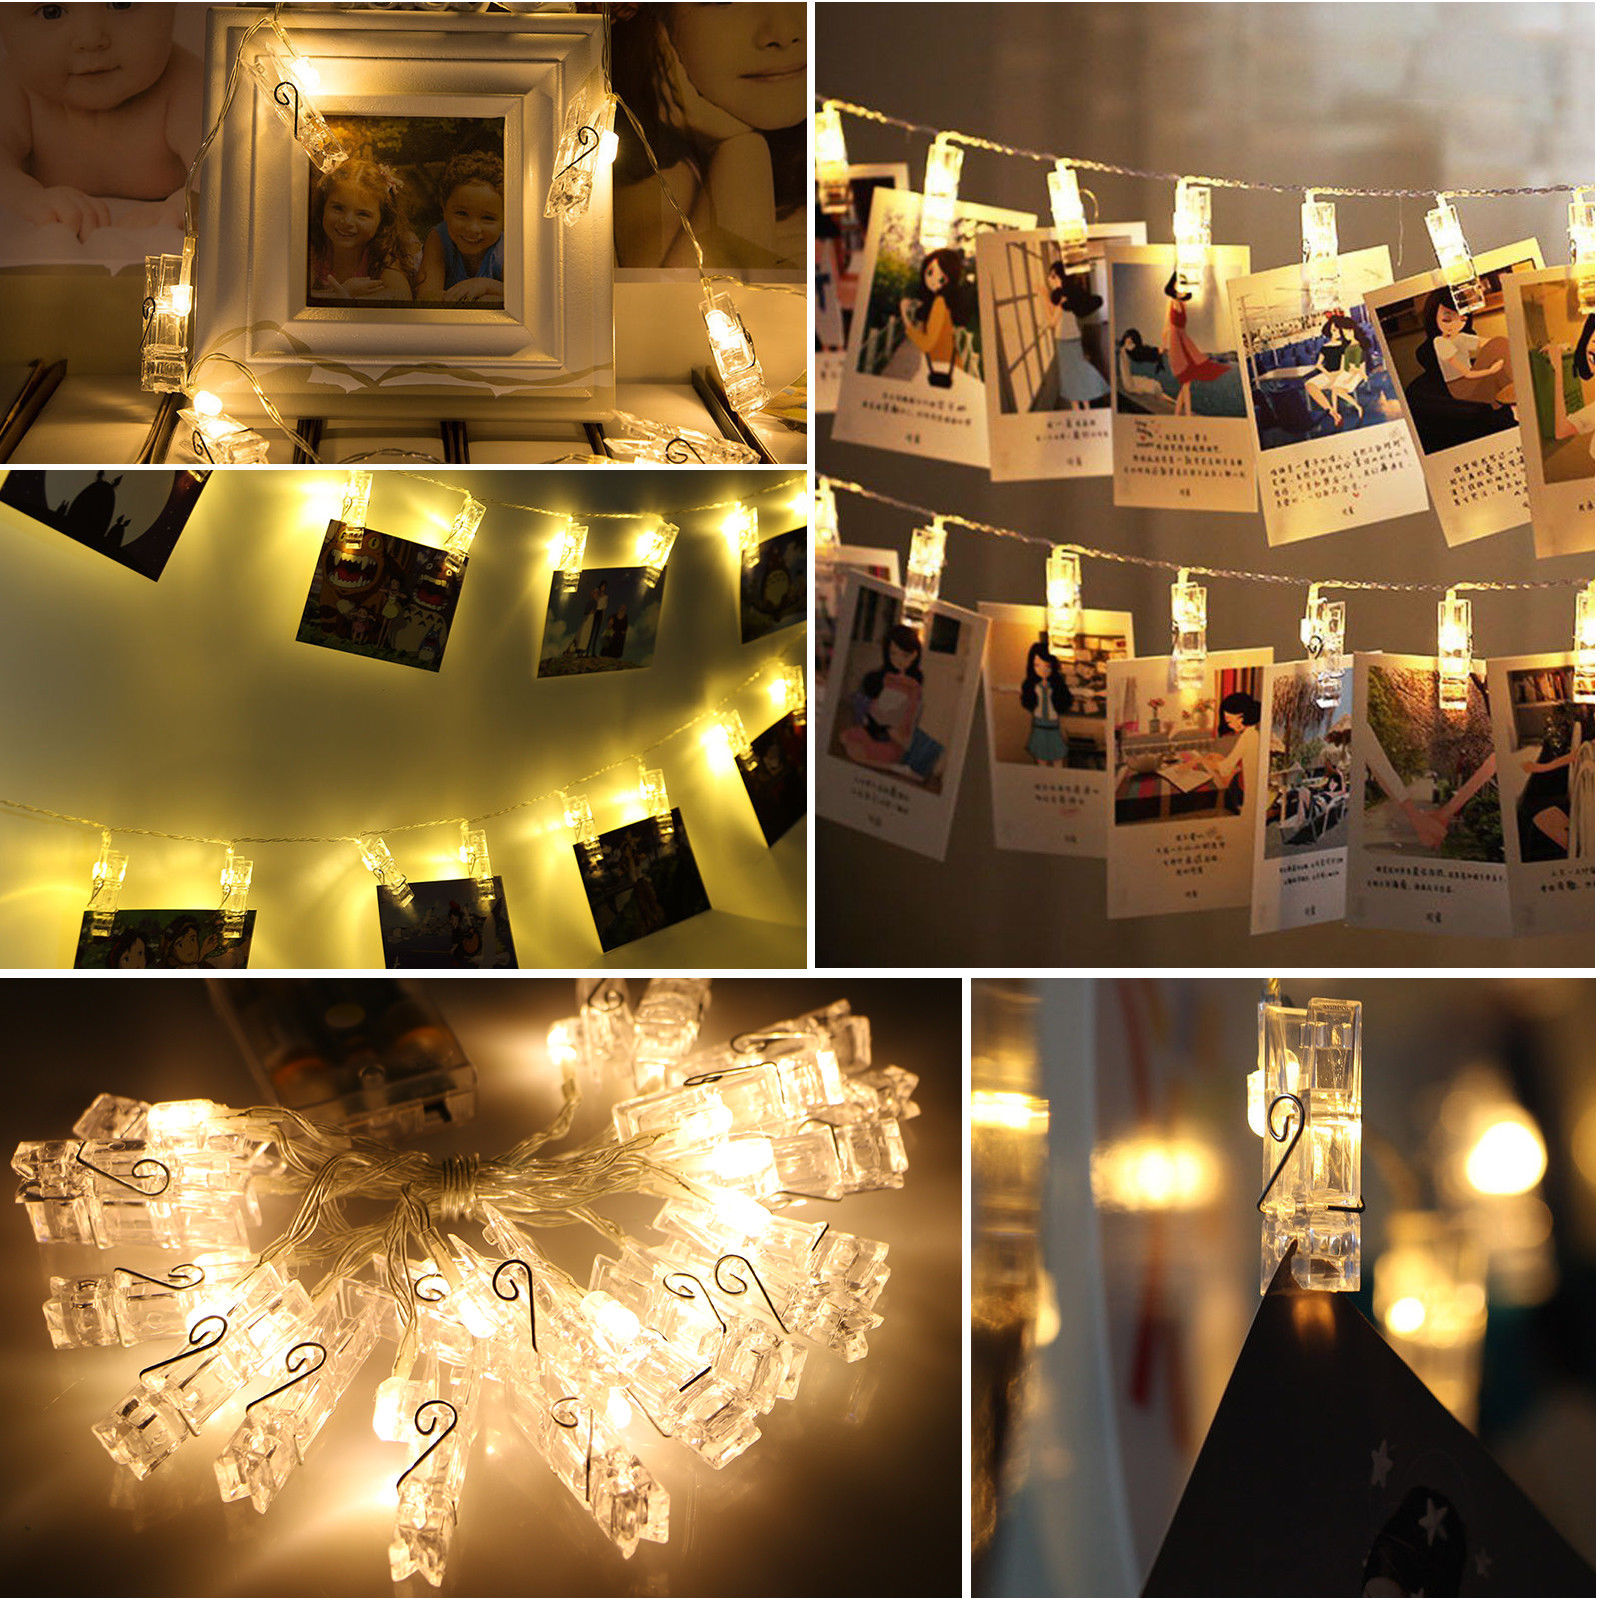 EEEKit Waterproof 20 LED Photo String Lights Clips Battery Powered Fairy Wedding Party Christmas Home Decor for Hanging... by EEEKit